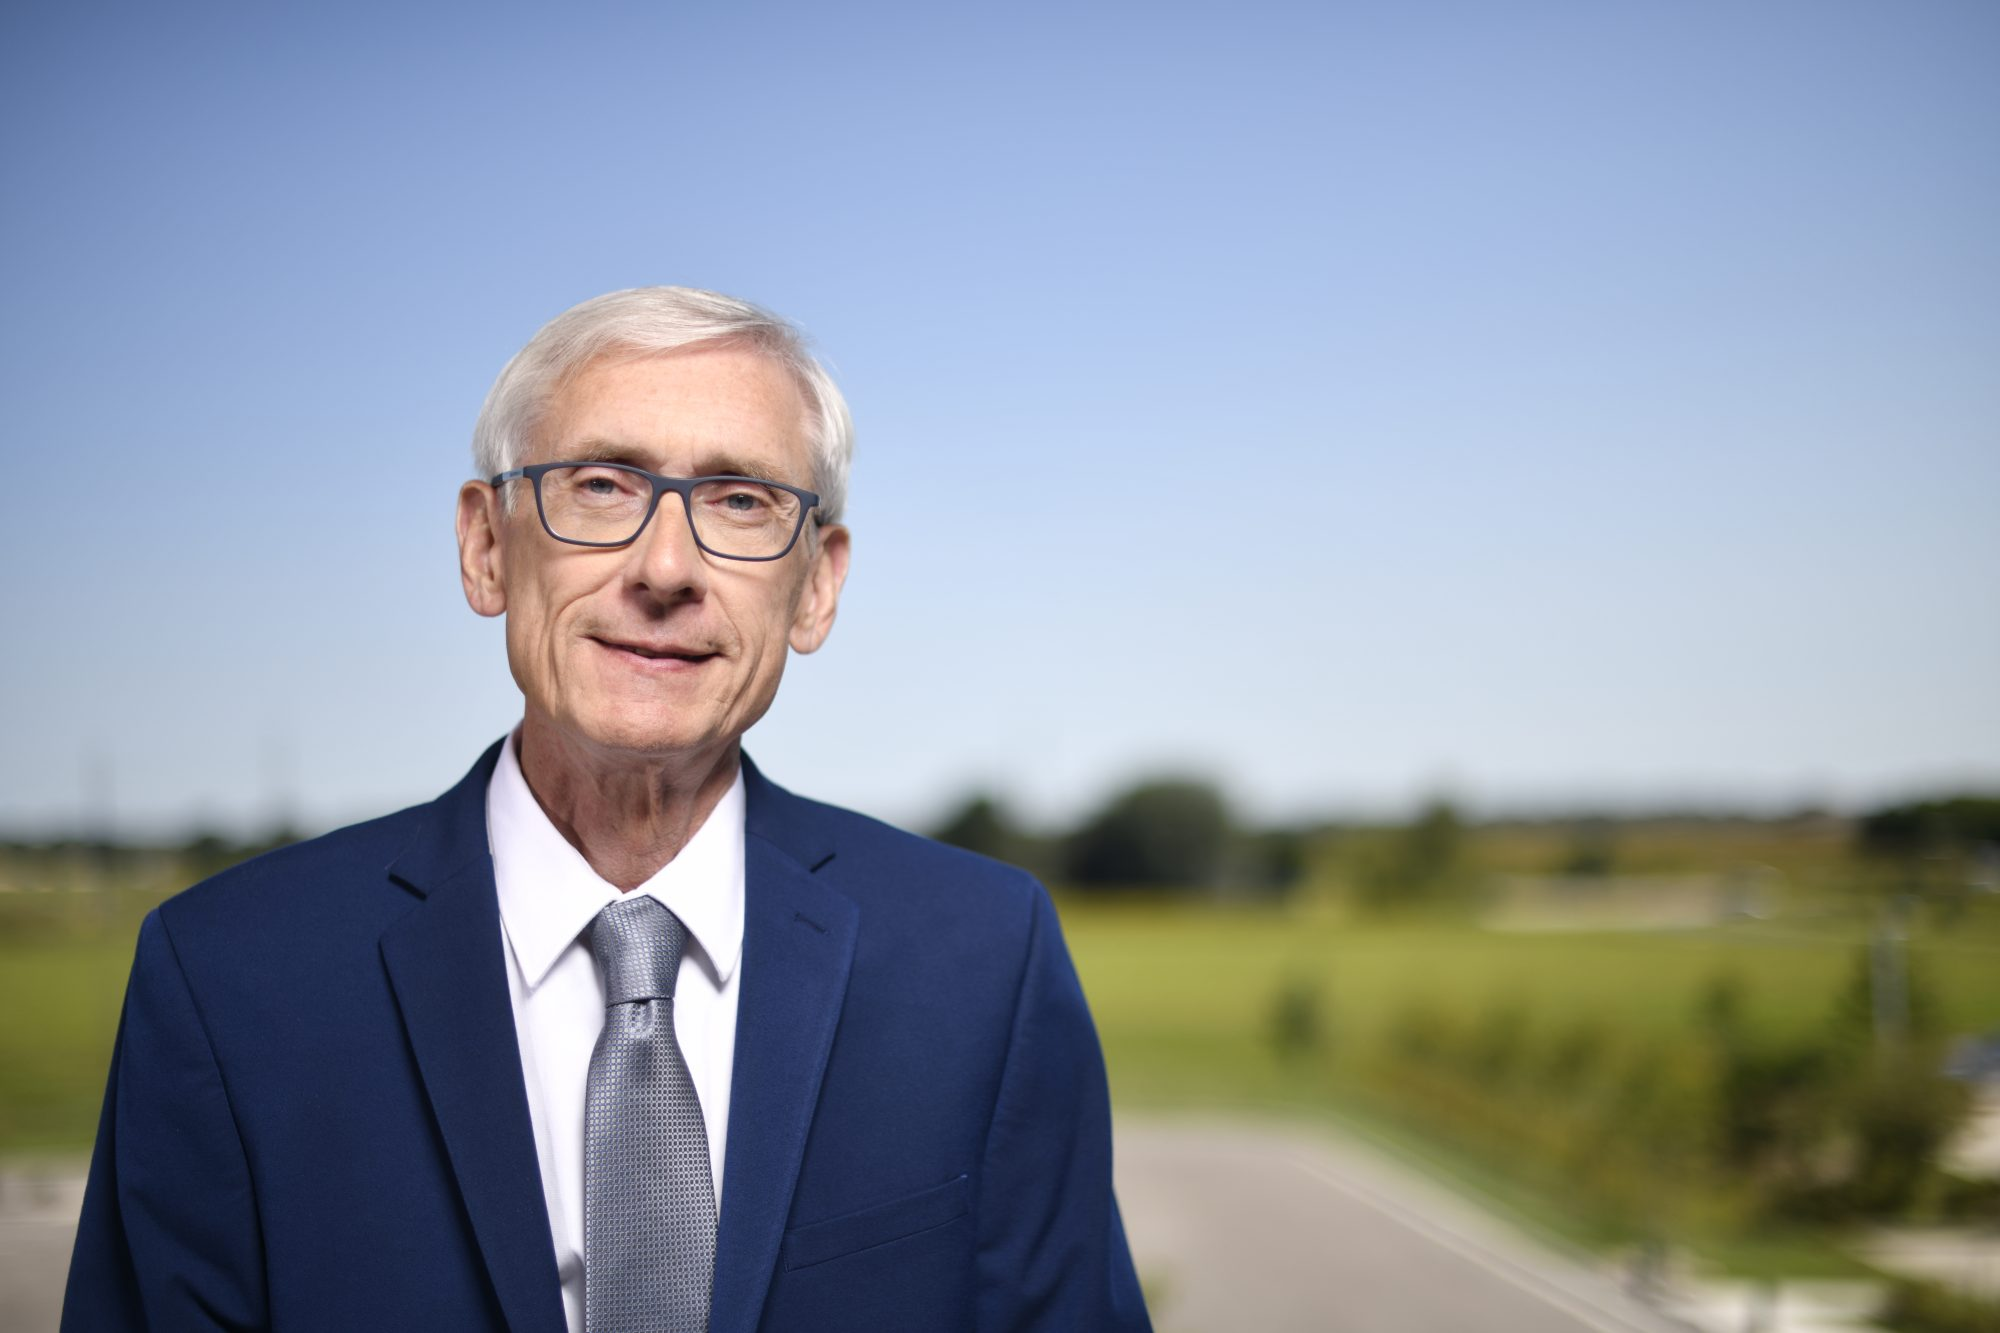 Is Tony Evers the New Andrew Cuomo?